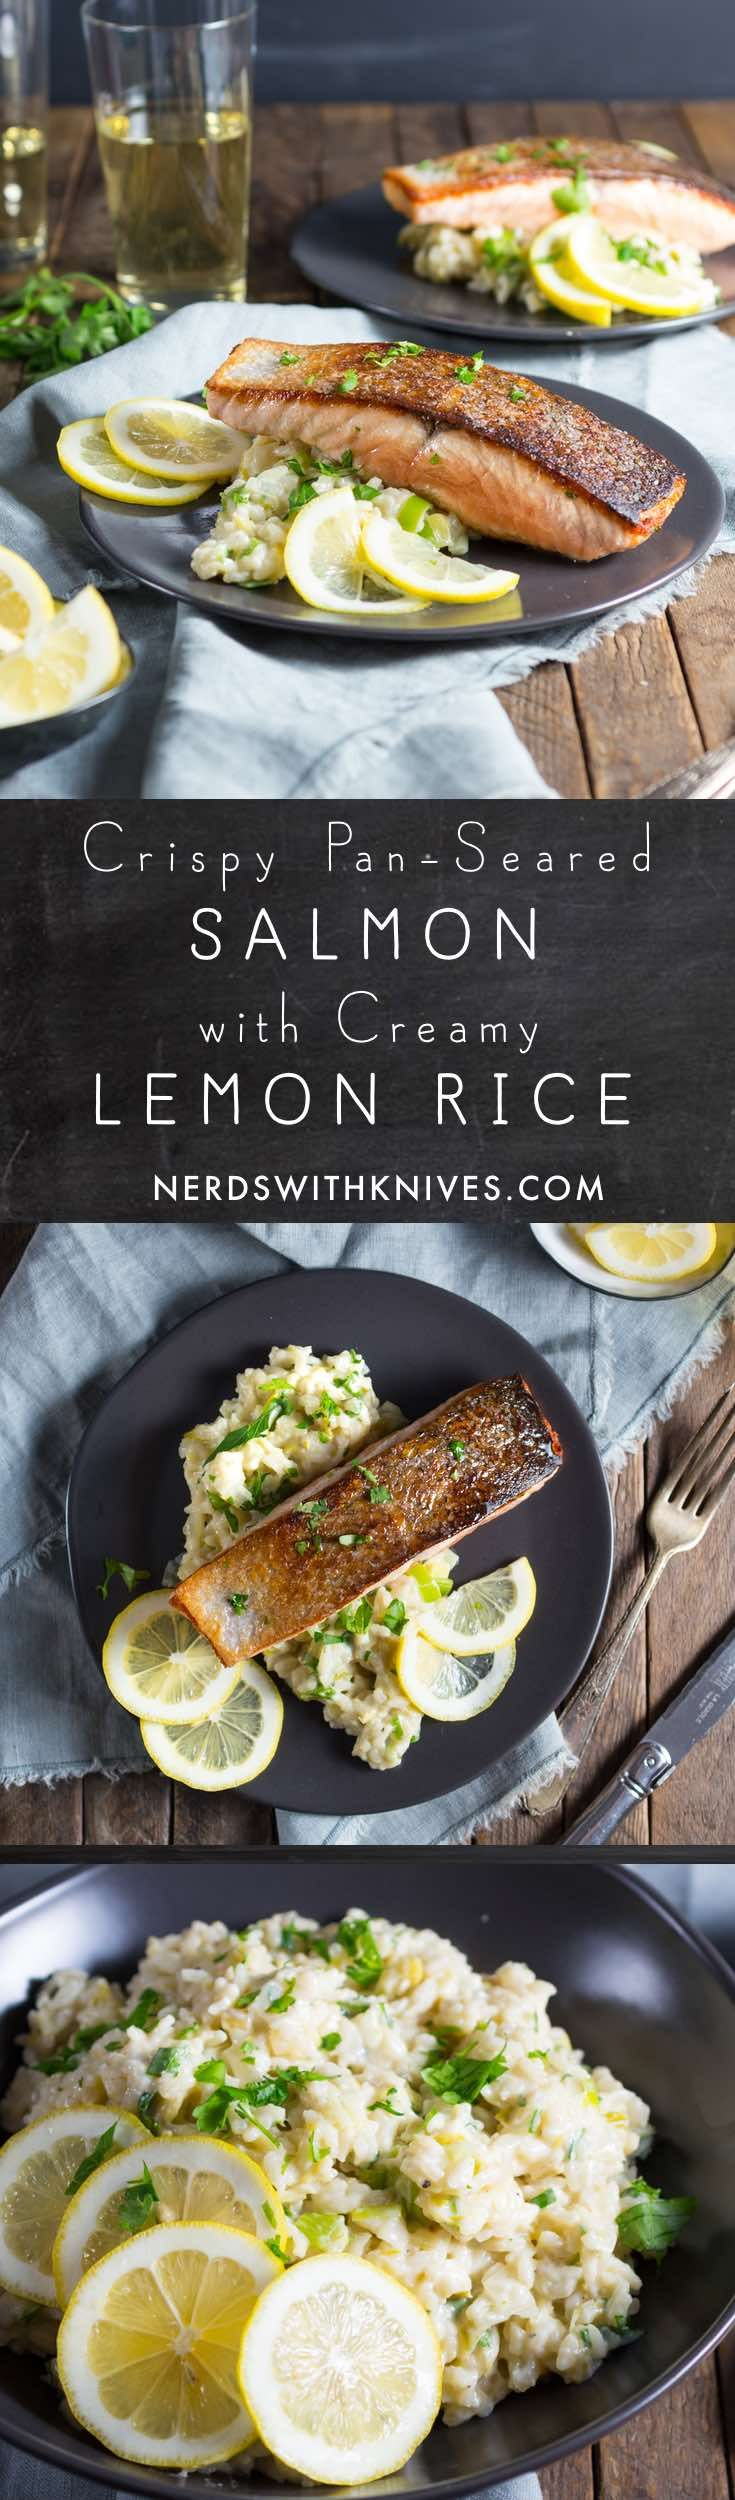 Crispy Pan-Seared Salmon with Creamy Lemon Rice